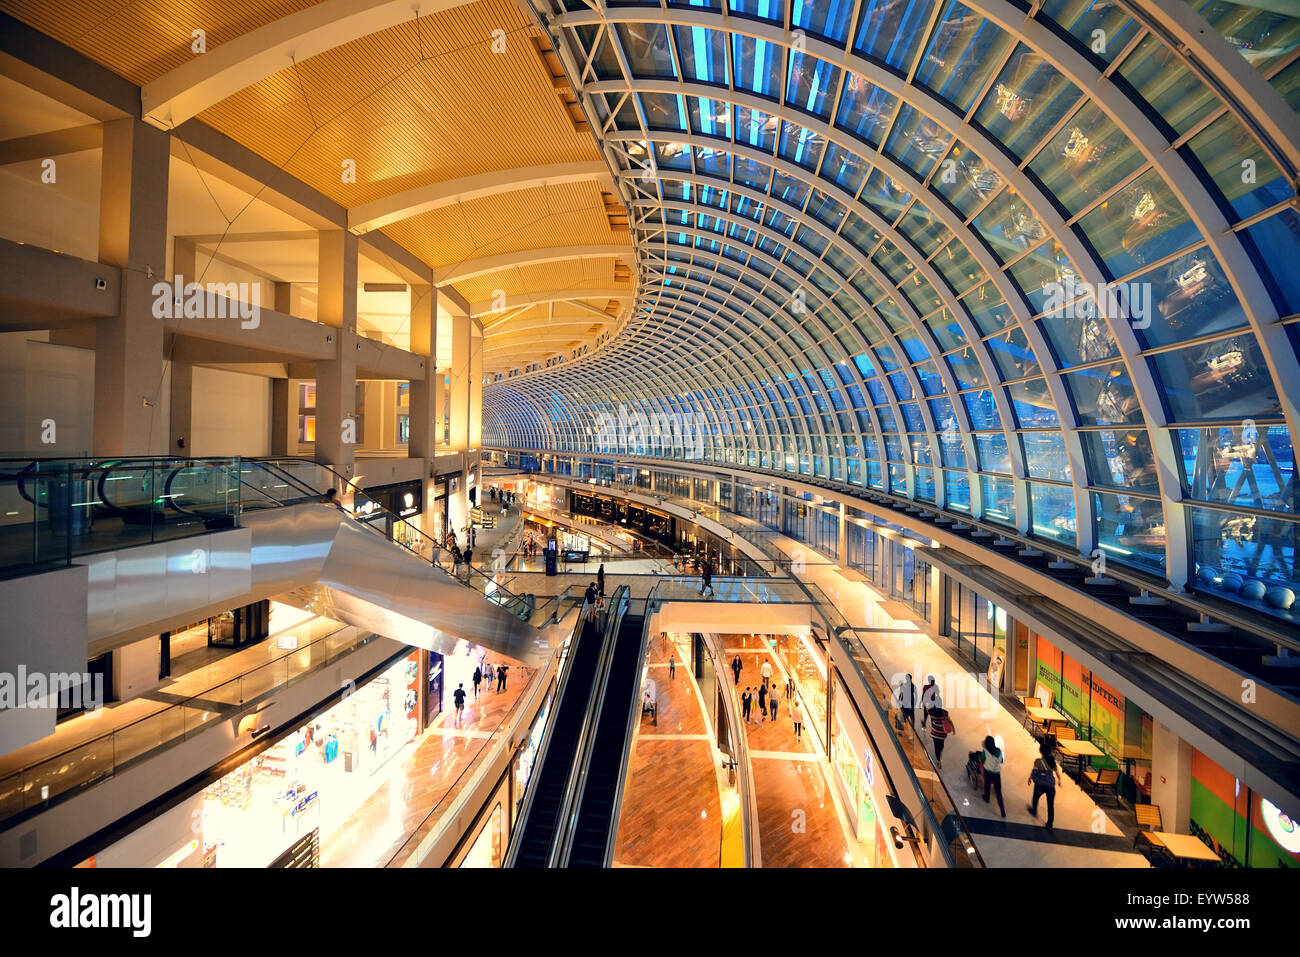 Bay Sands In Singapore The World S Most Expensive Hotel - Singapore apr 5 marina bay sands hotel interior on april 5 2014 in singapore it is the world s most expensive building with cost of us 4 7 billion and